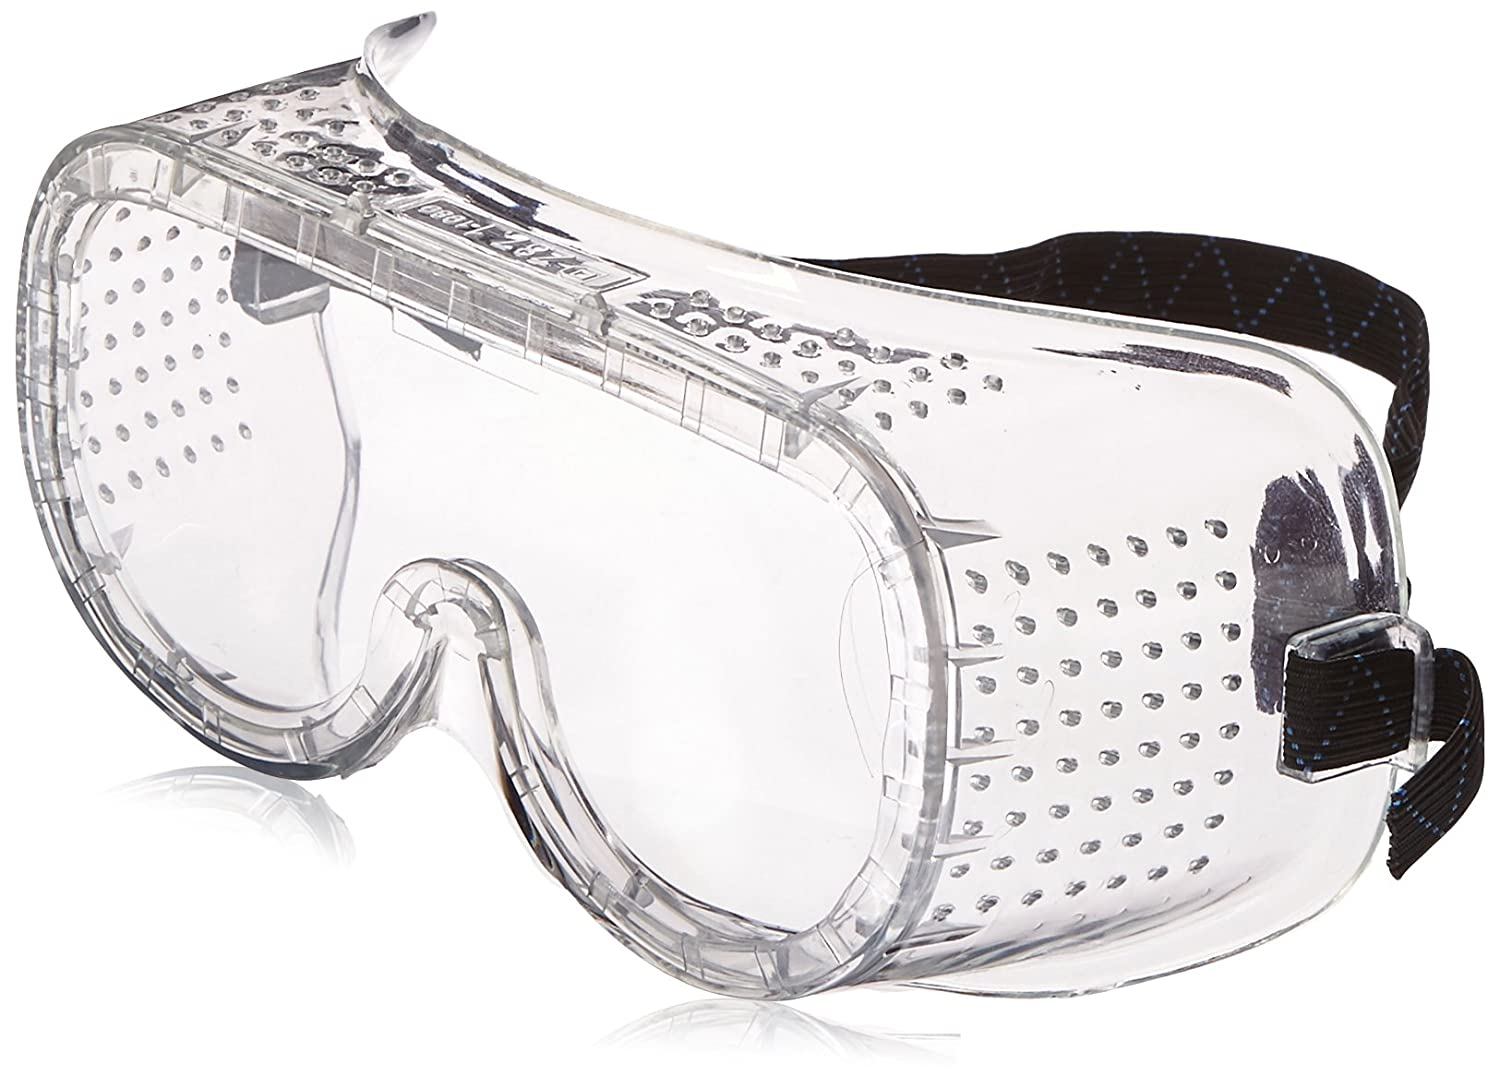 72fdcd421099 Neiko 53874A Protective Anti-Fog Safety Goggles with Wide-Vision ...